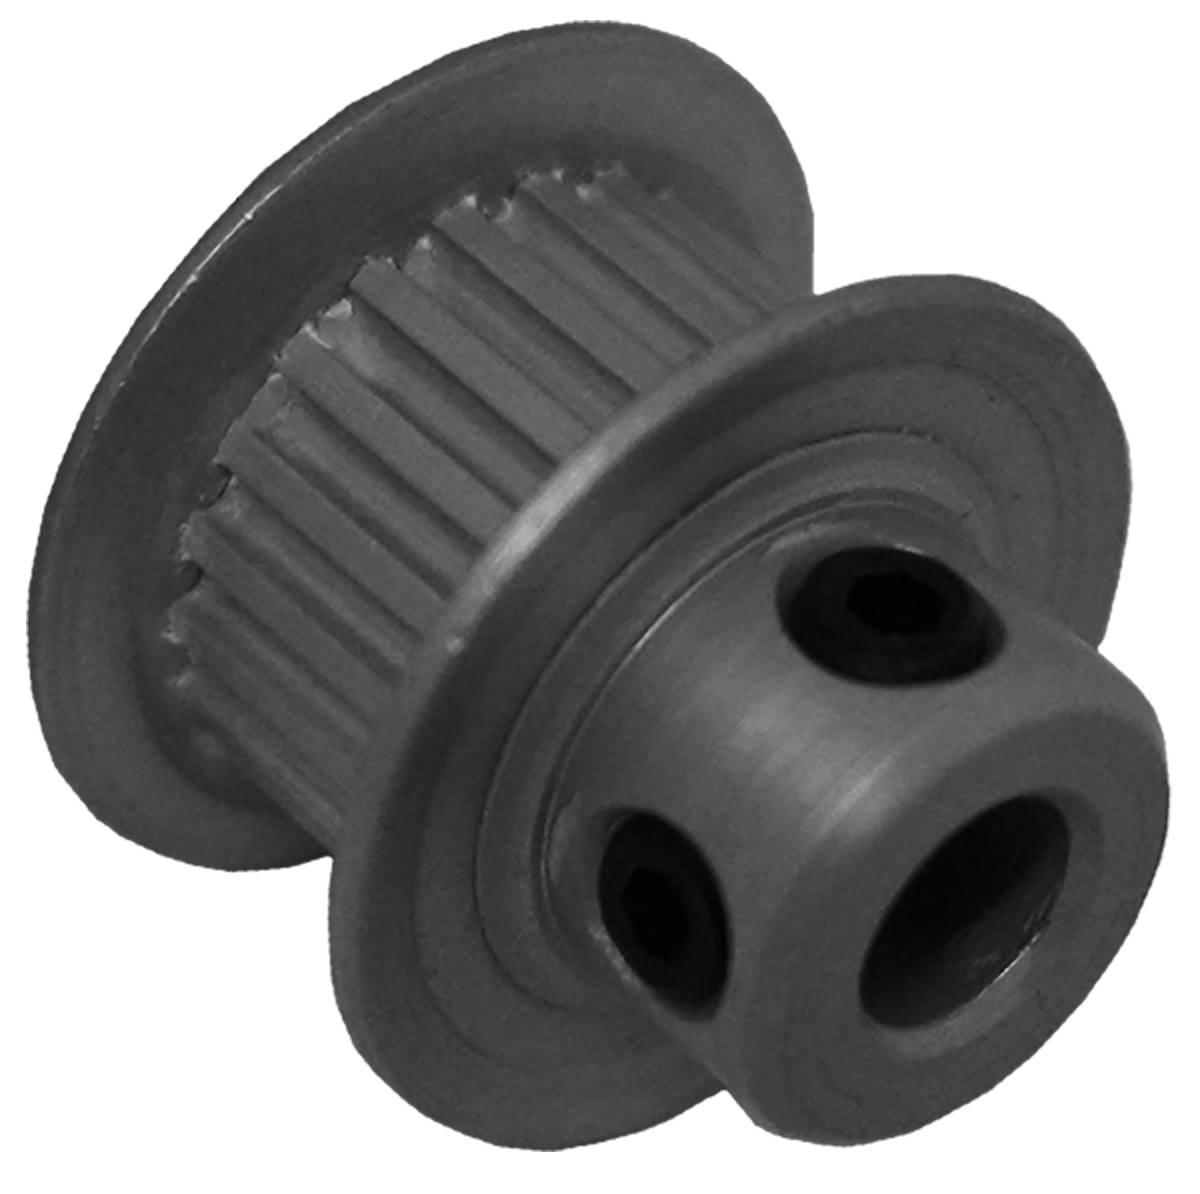 21MP025-6FA2 - Aluminum Imperial Pitch Pulleys